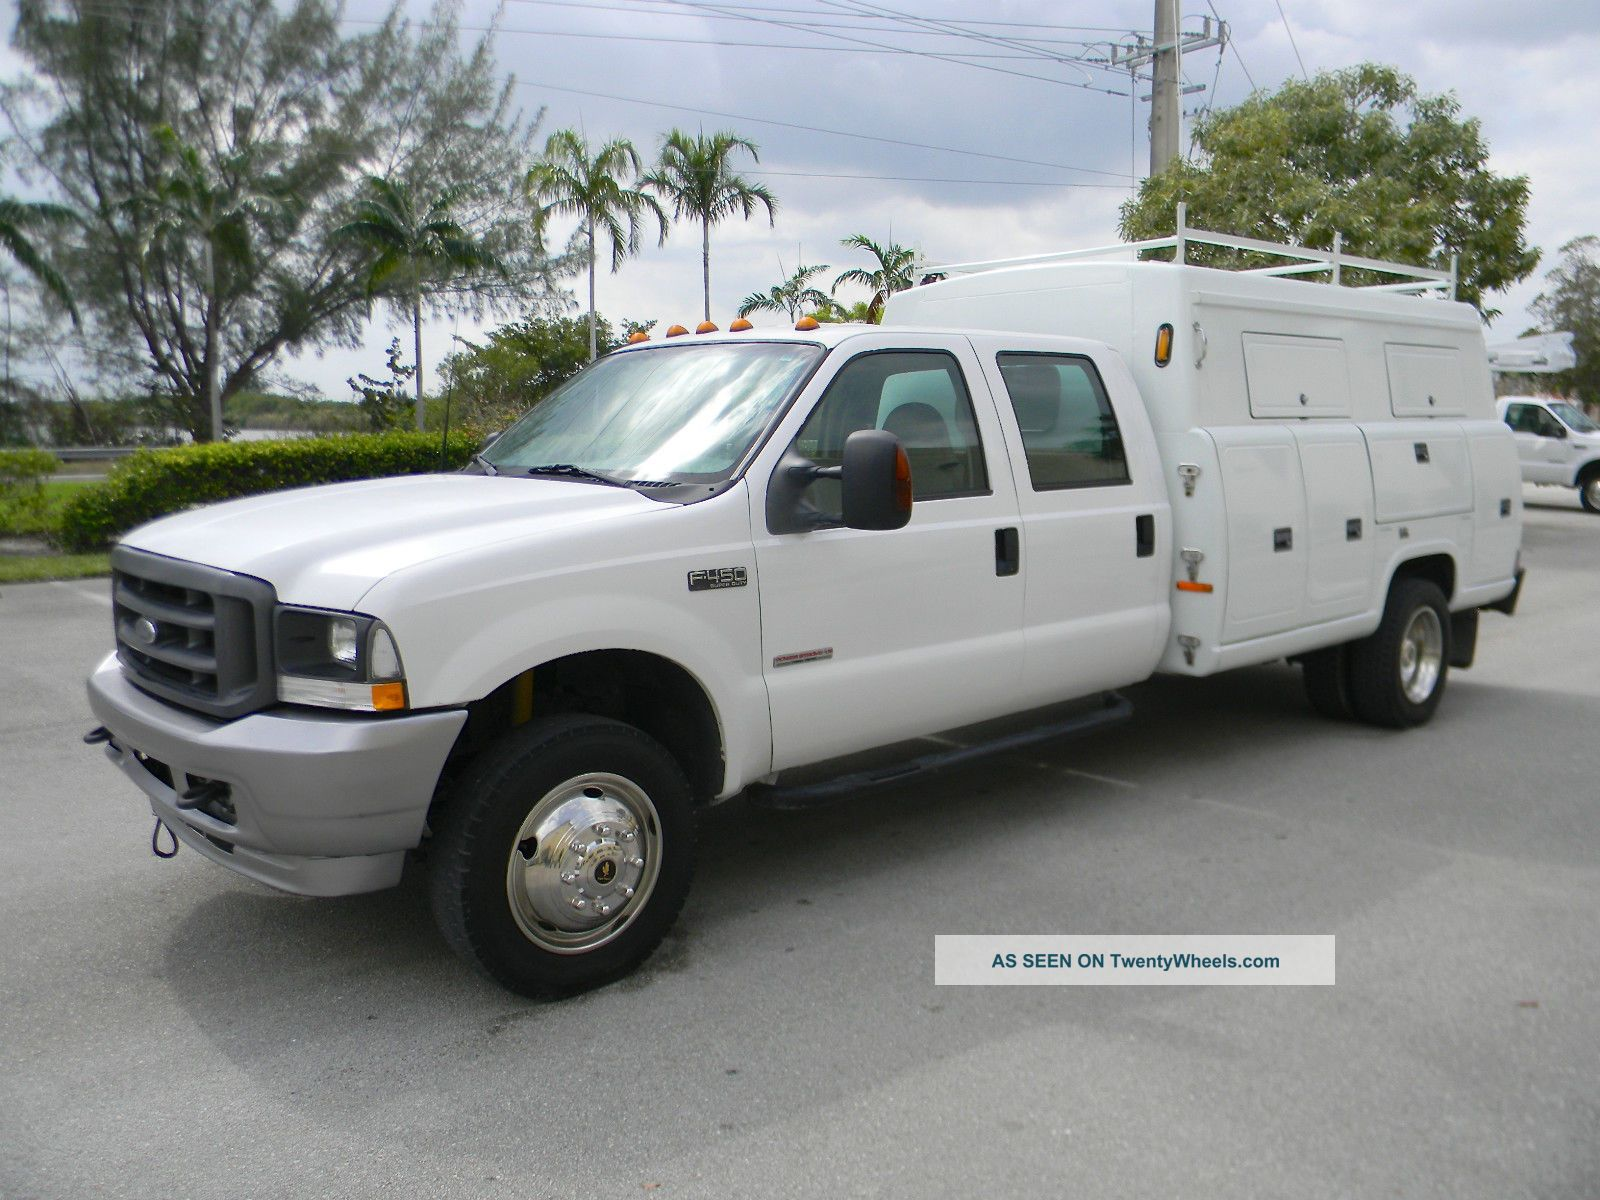 2004 Ford F450 Utility & Service Trucks photo